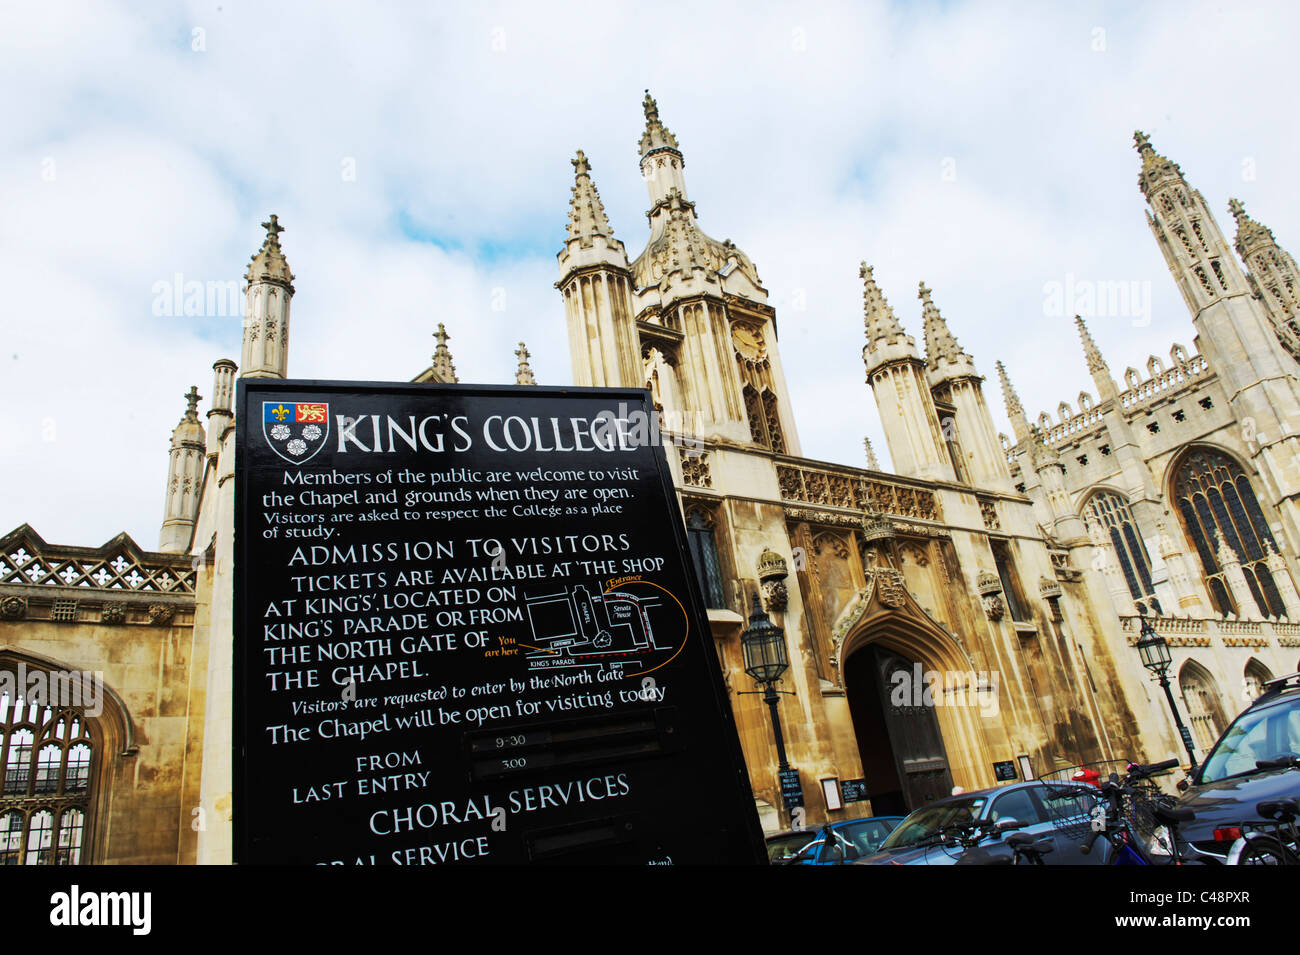 Wide angle view of Kings College Cambridge, UK - Stock Image